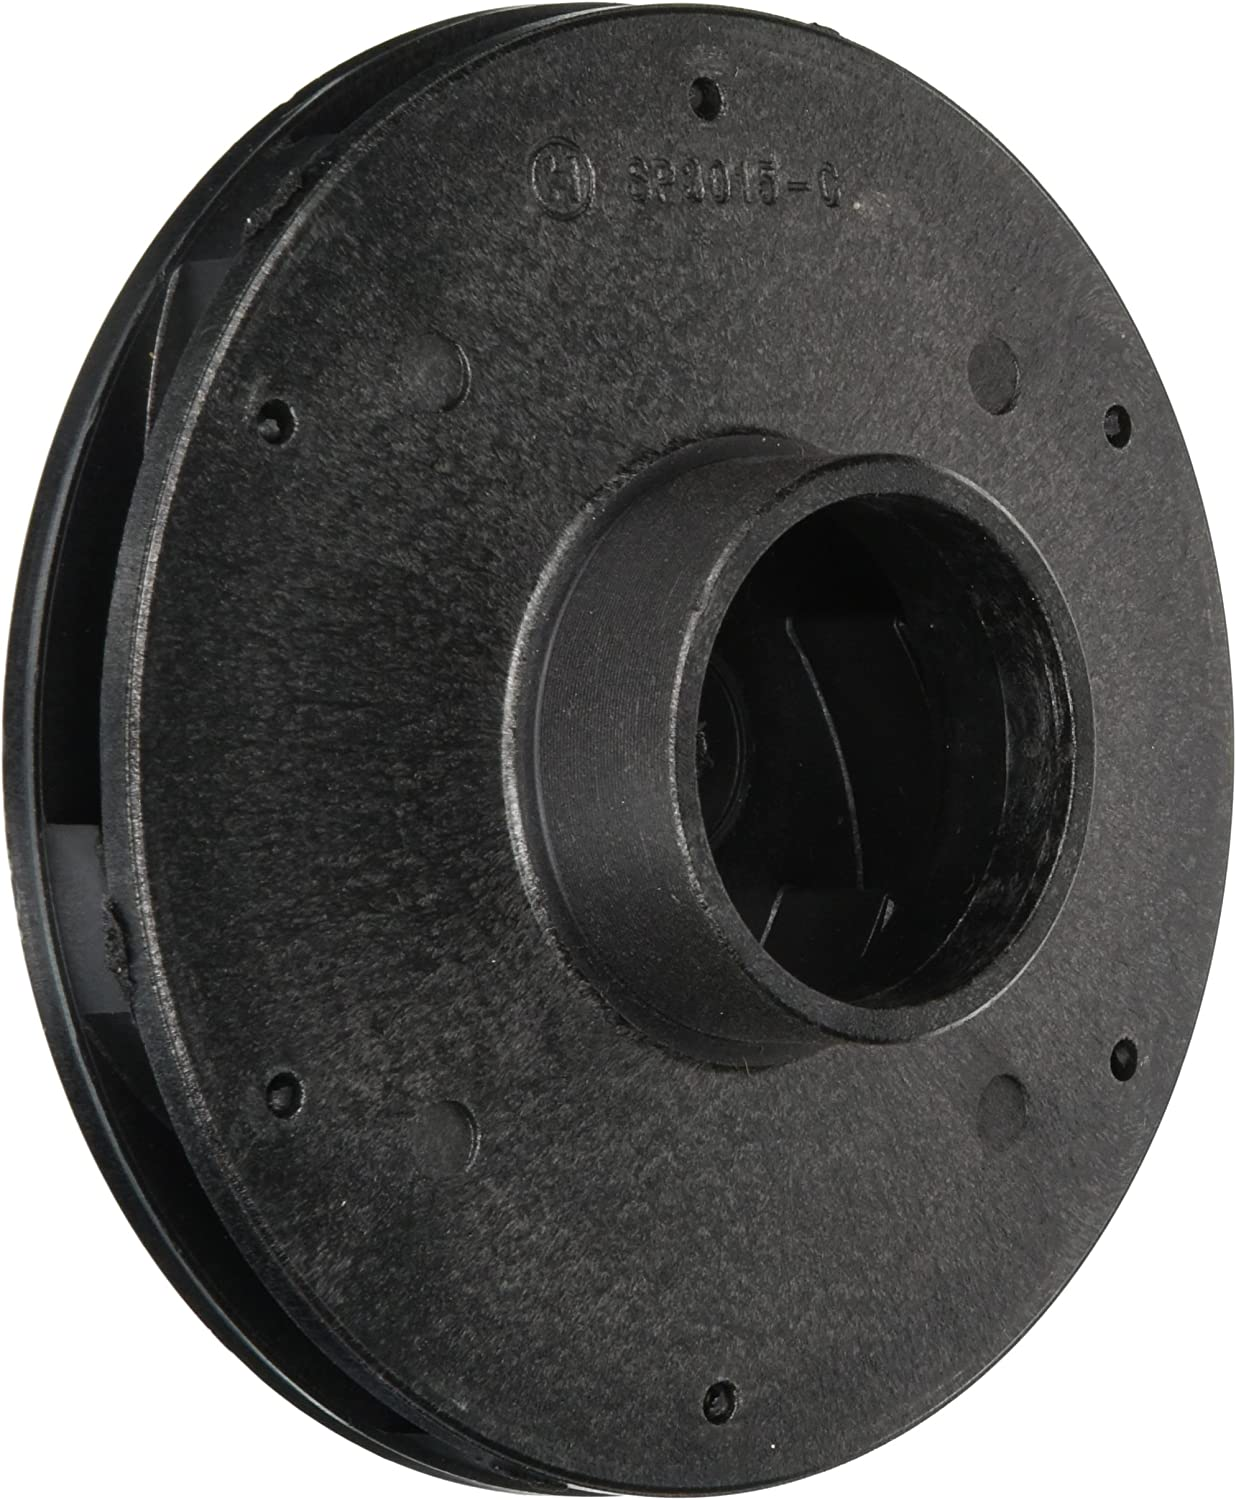 Hayward SPX3015C 1-1 2-Horsepower Haywa Easy-to-use Impeller for Replacement ! Super beauty product restock quality top!